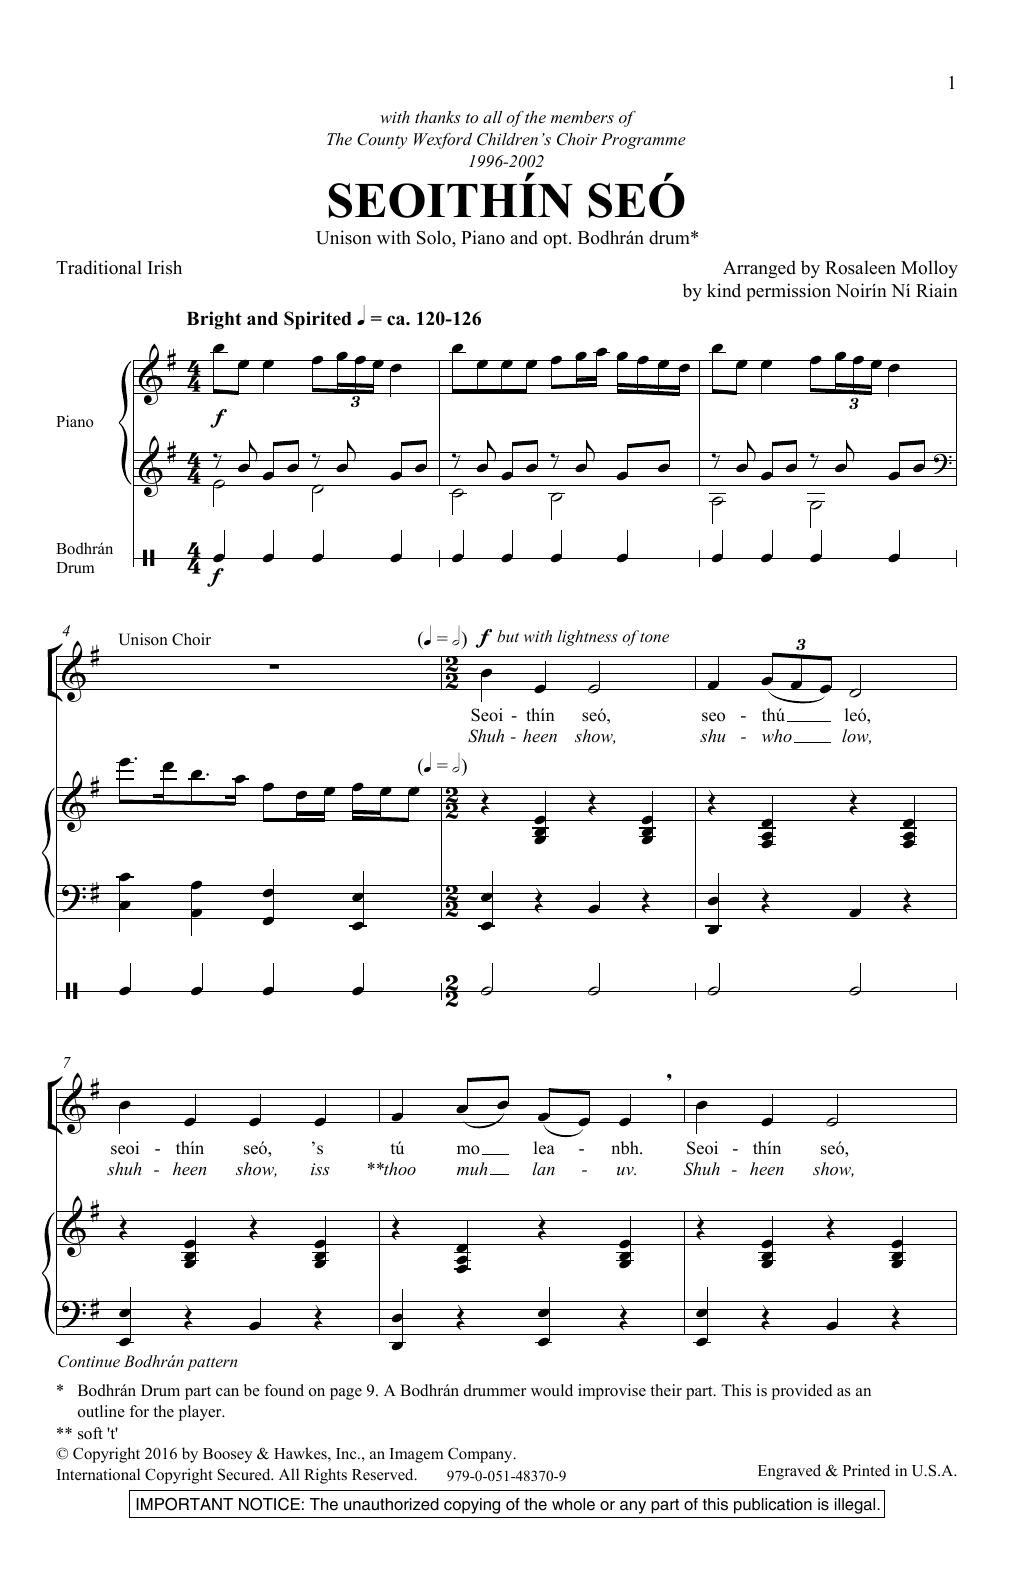 Rosaleen Molloy Seoithin Seo sheet music notes and chords